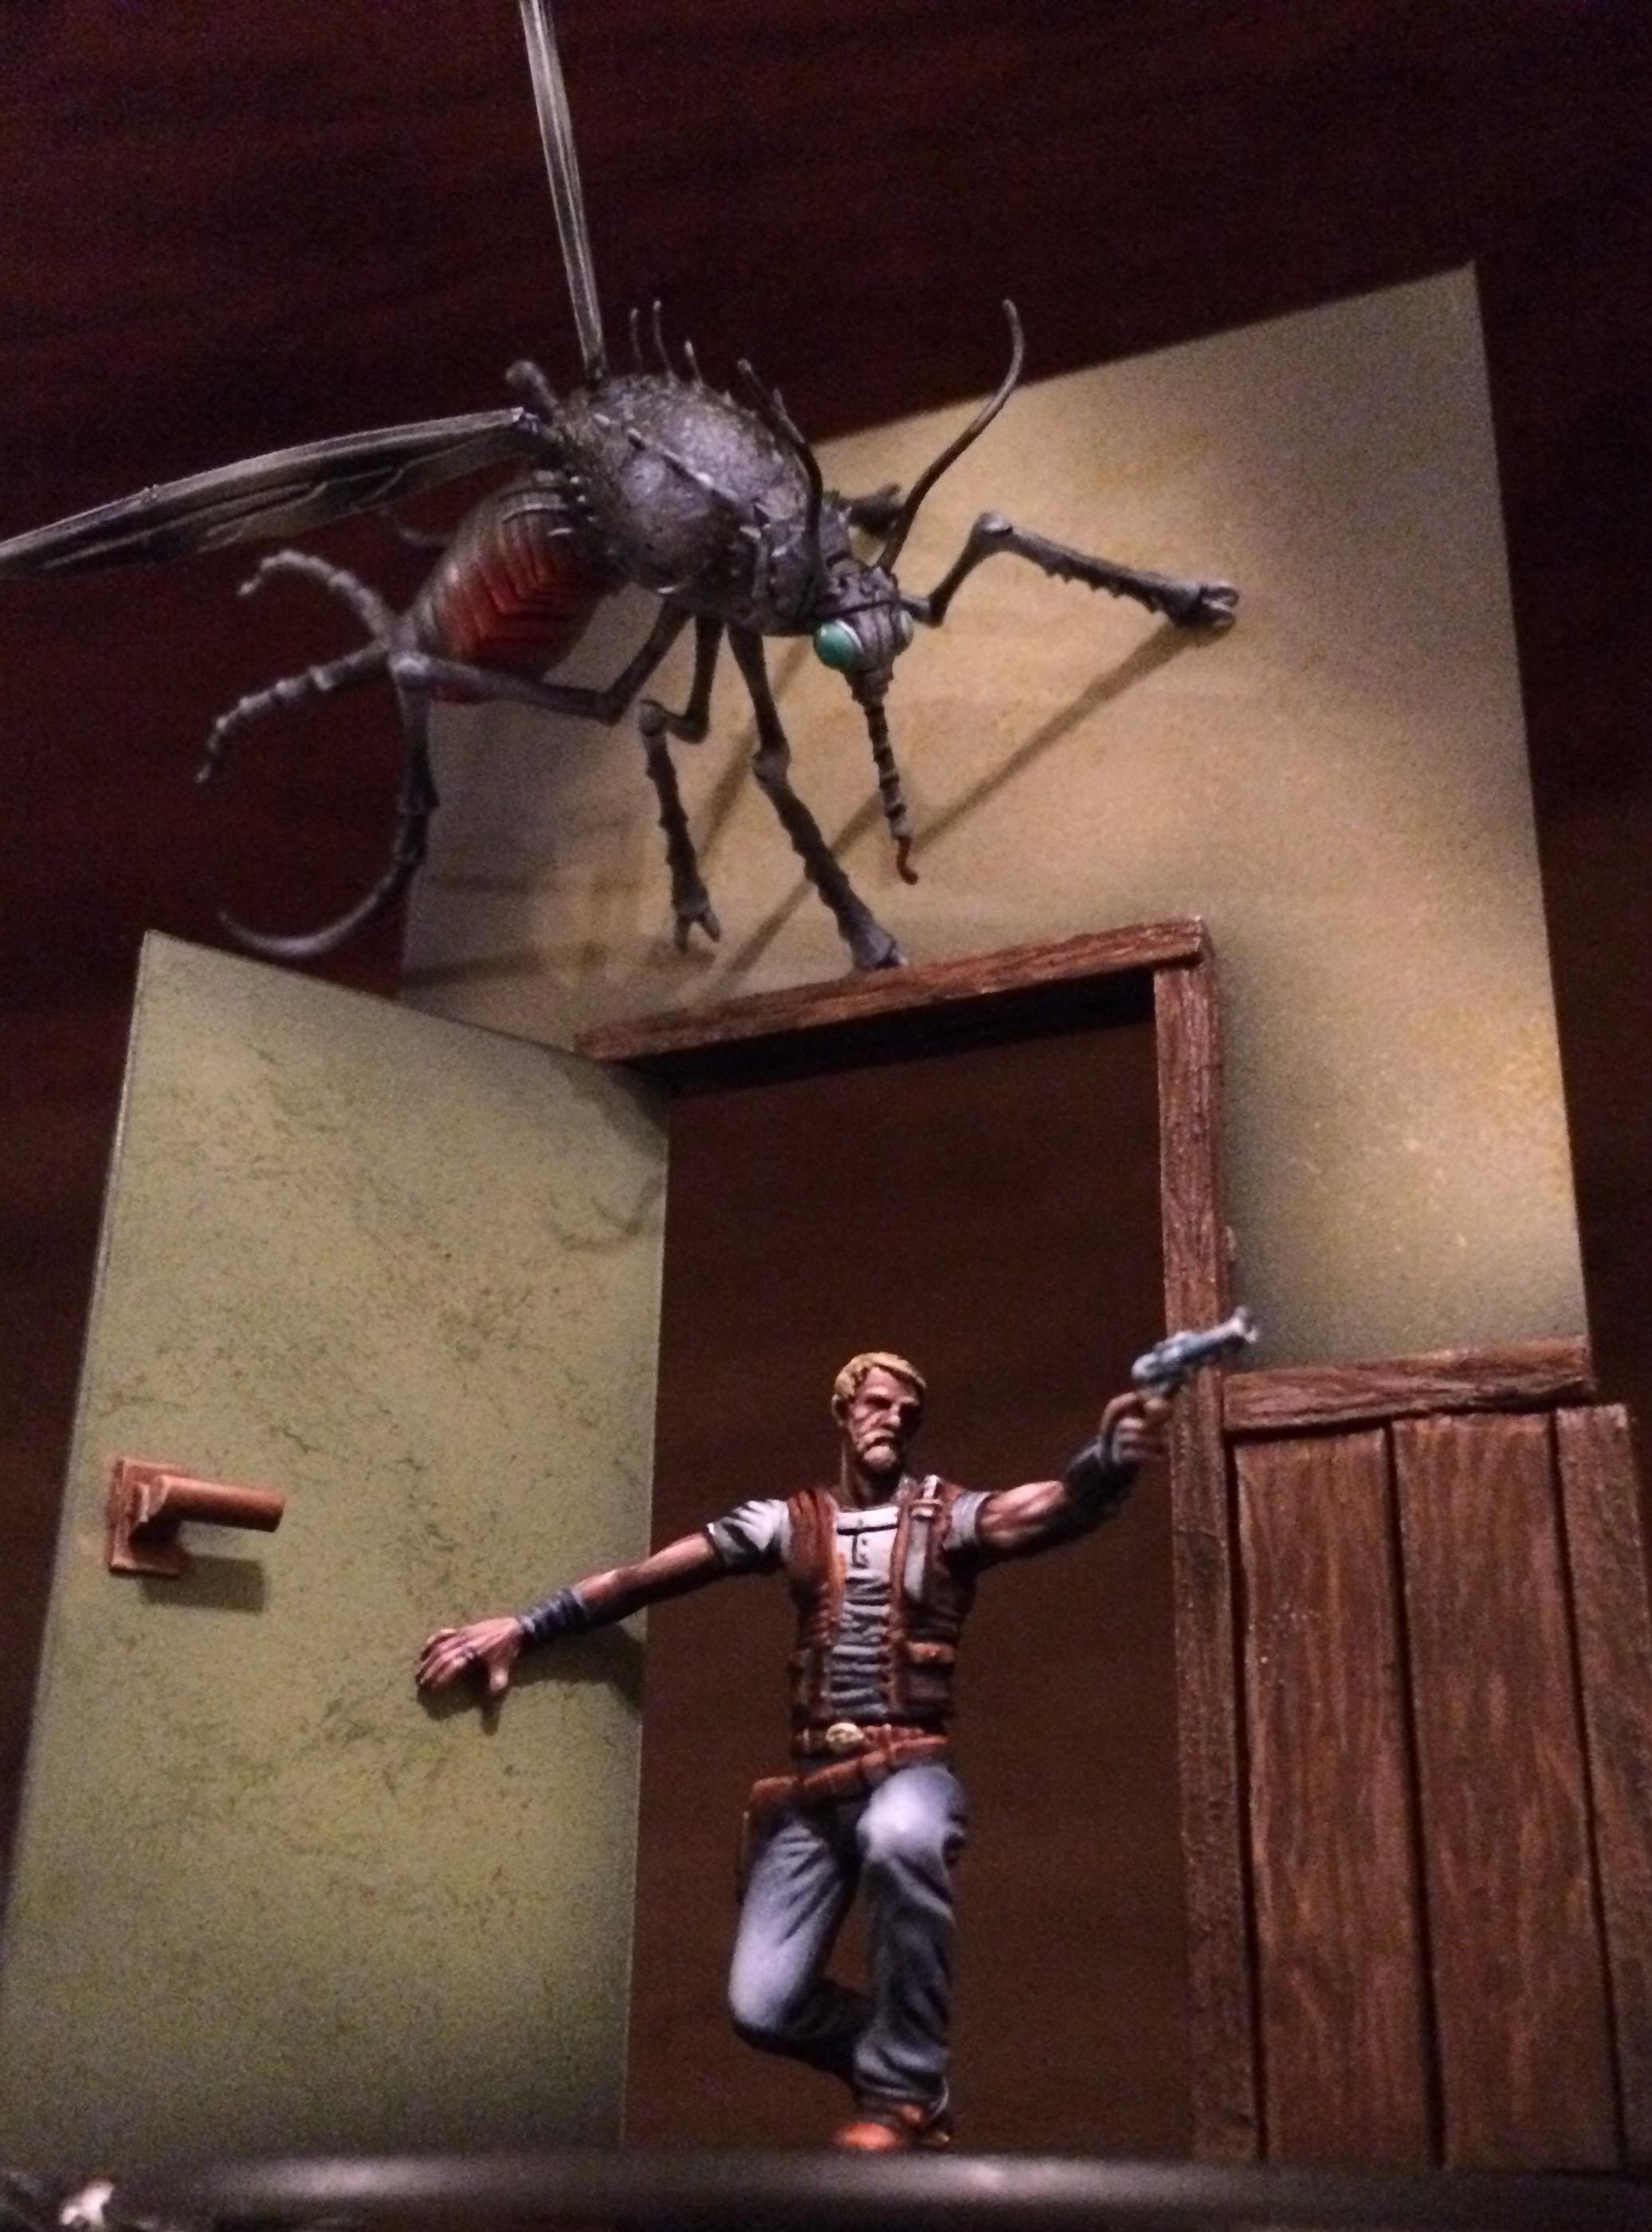 Bug, Diorama, Horrors, Malifaux, Modern, Mosquito, Through The Breach